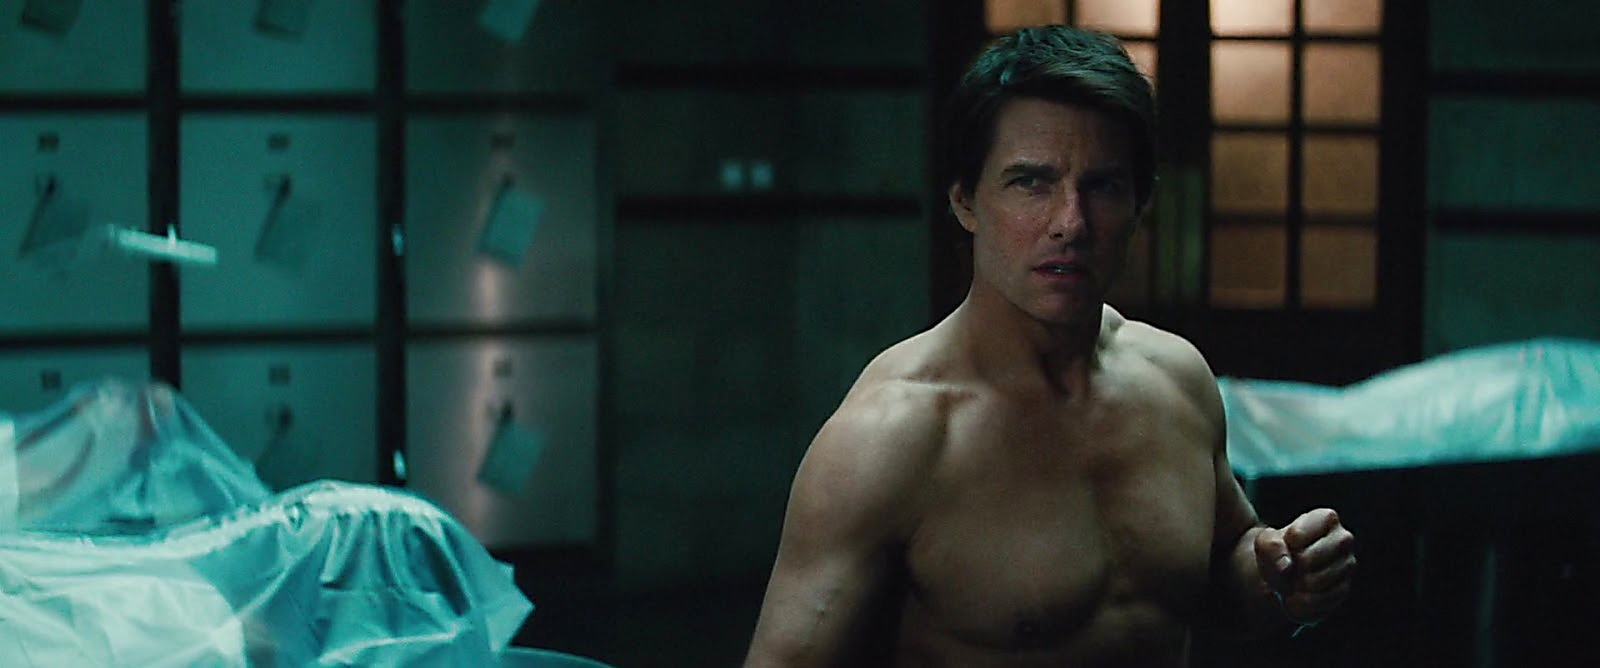 Tom Cruise latest sexy shirtless scene August 5, 2017, 11am